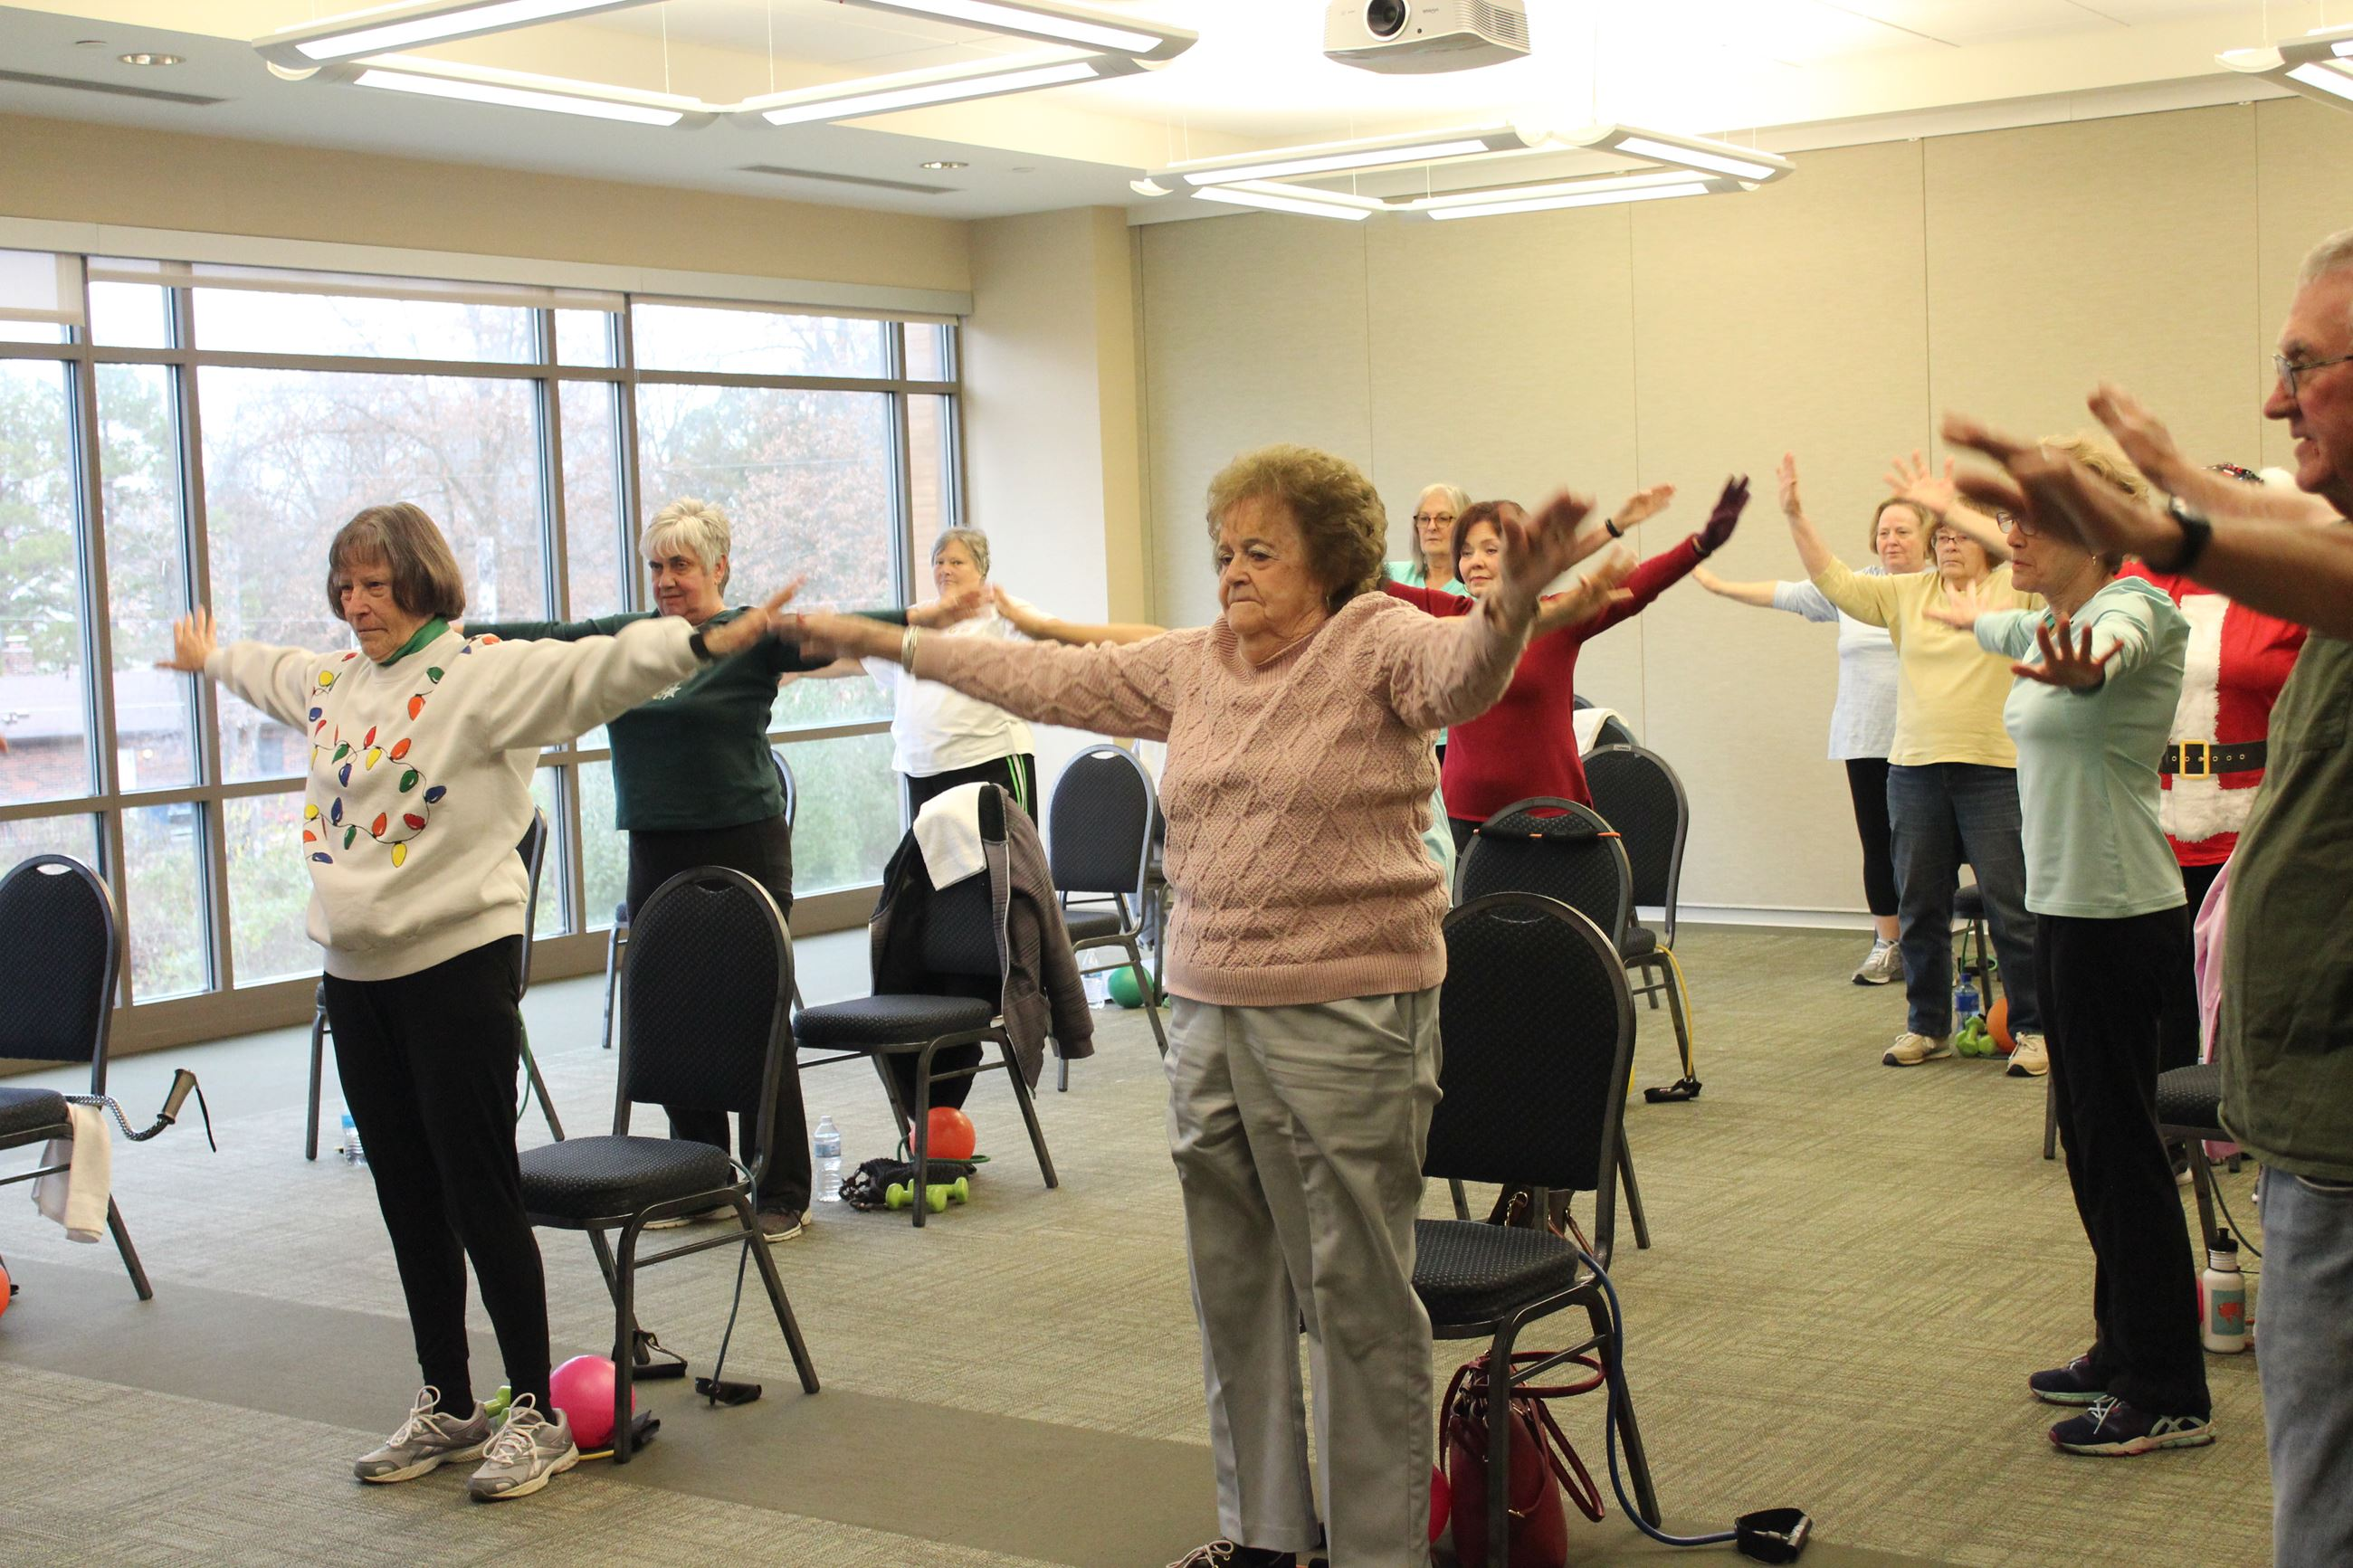 Senior citizens exercising